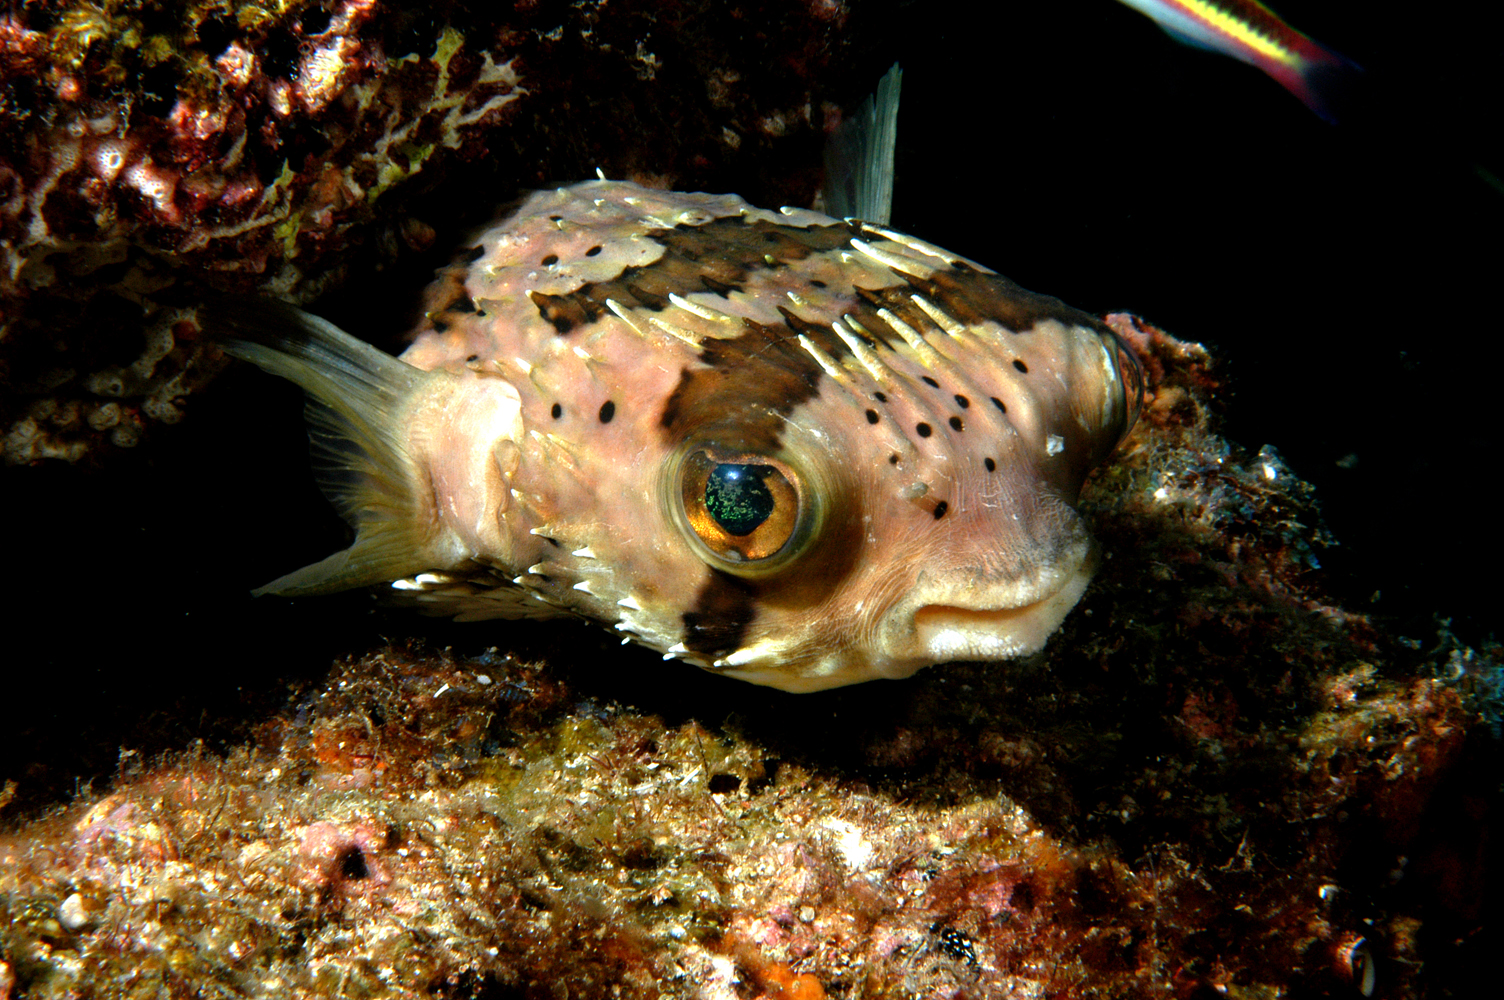 balloonfish reef environmental education foundation reef